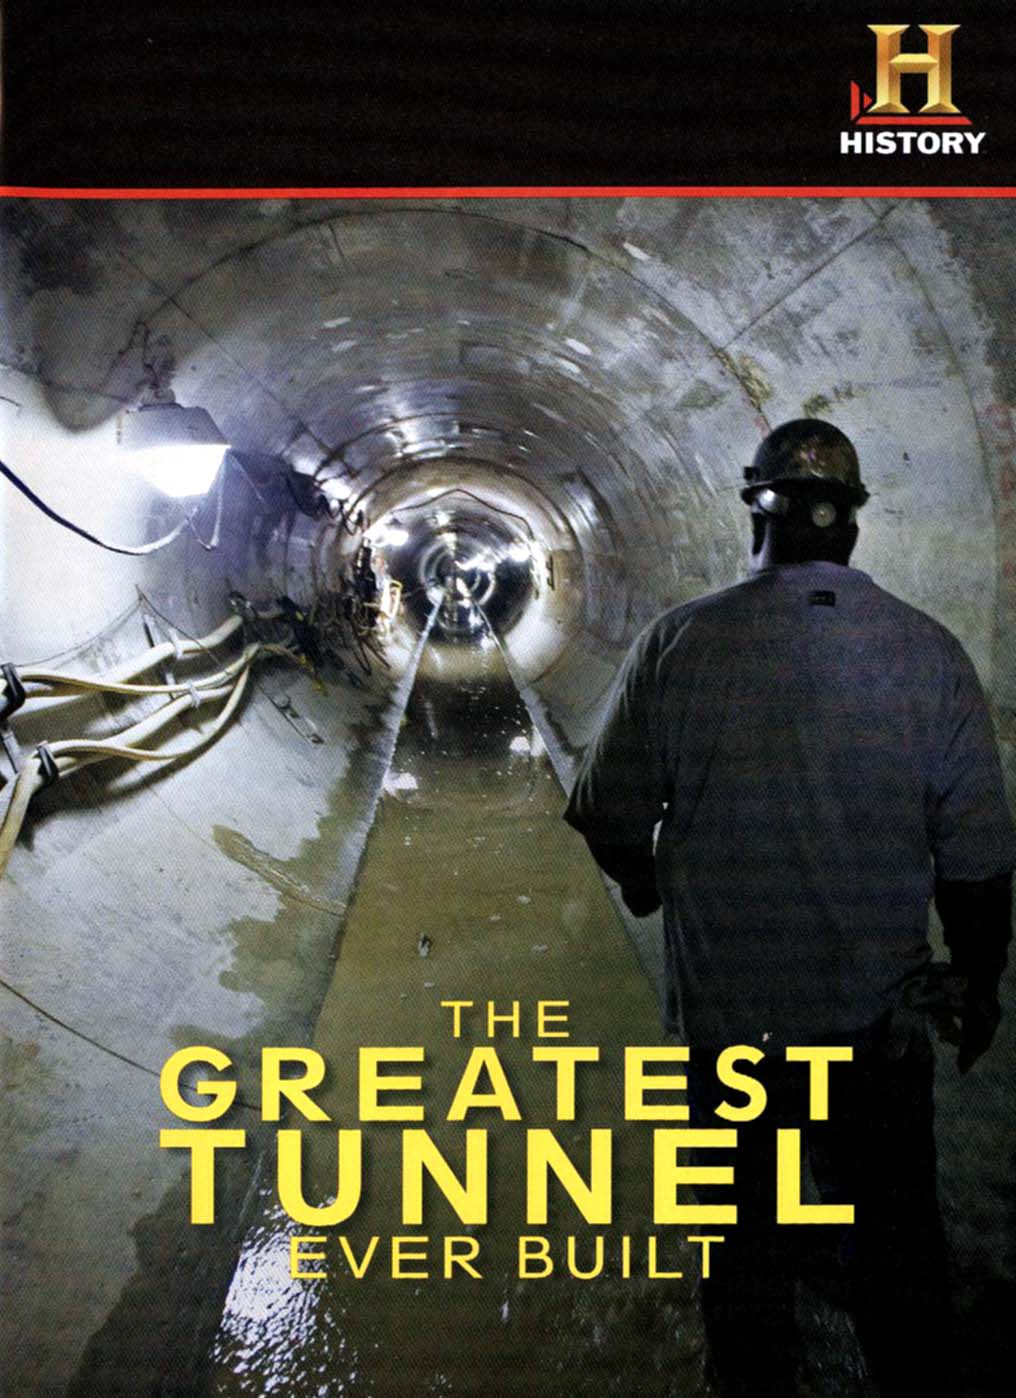 The Greatest Tunnel Ever Built